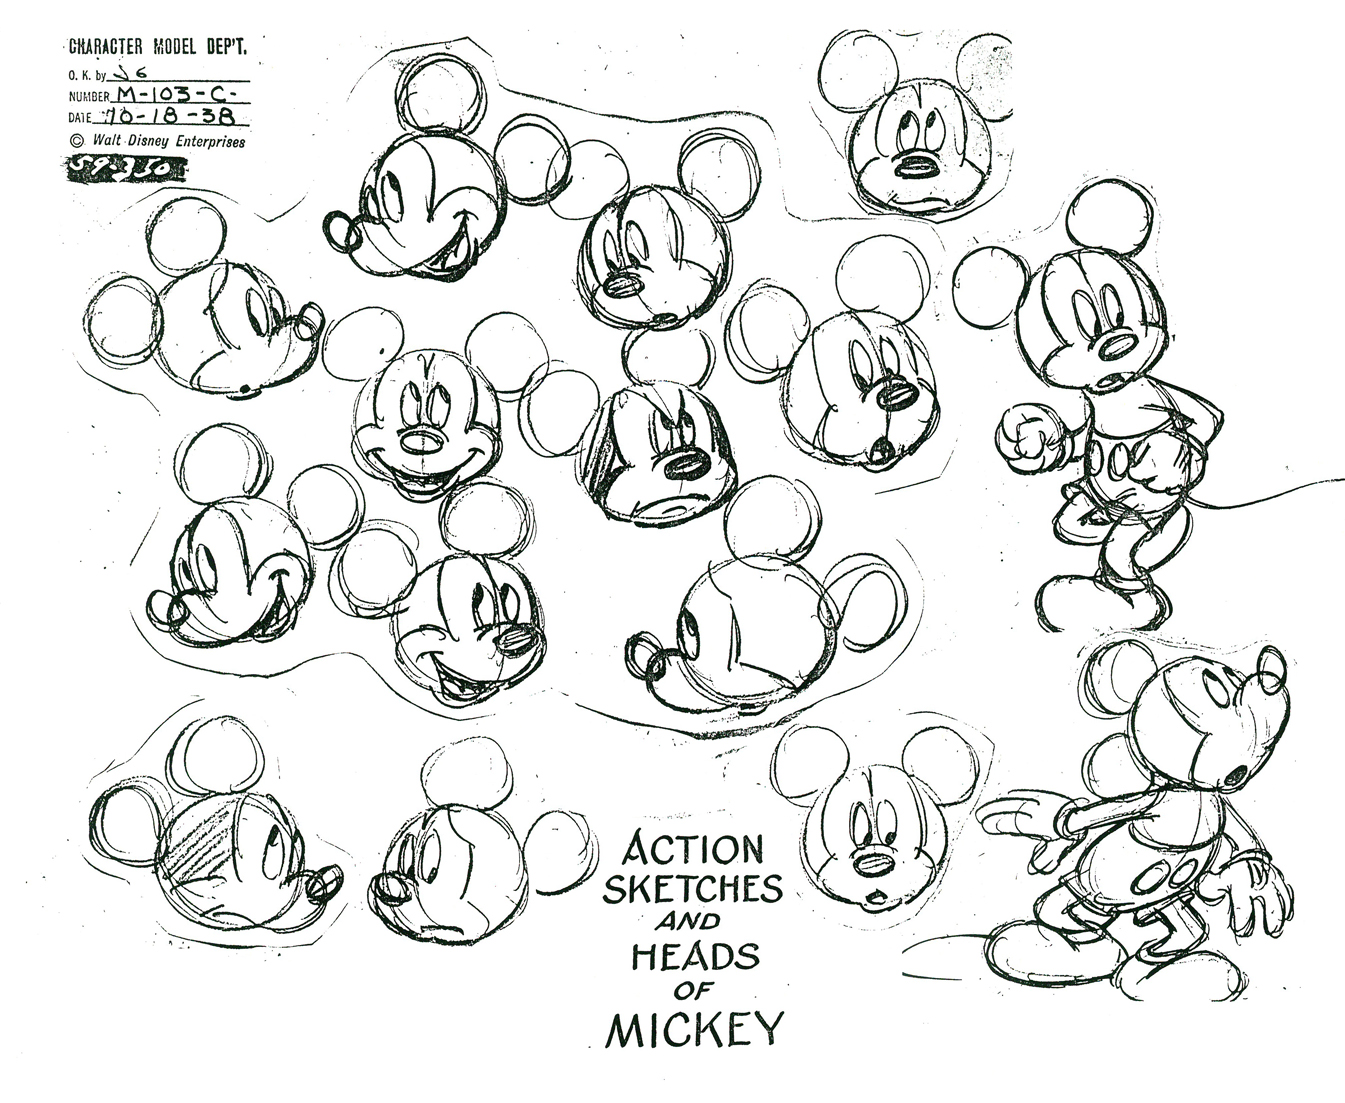 1345x1103 Pix For Gt Mickey Mouse Sketch Disney Mickey Mouse